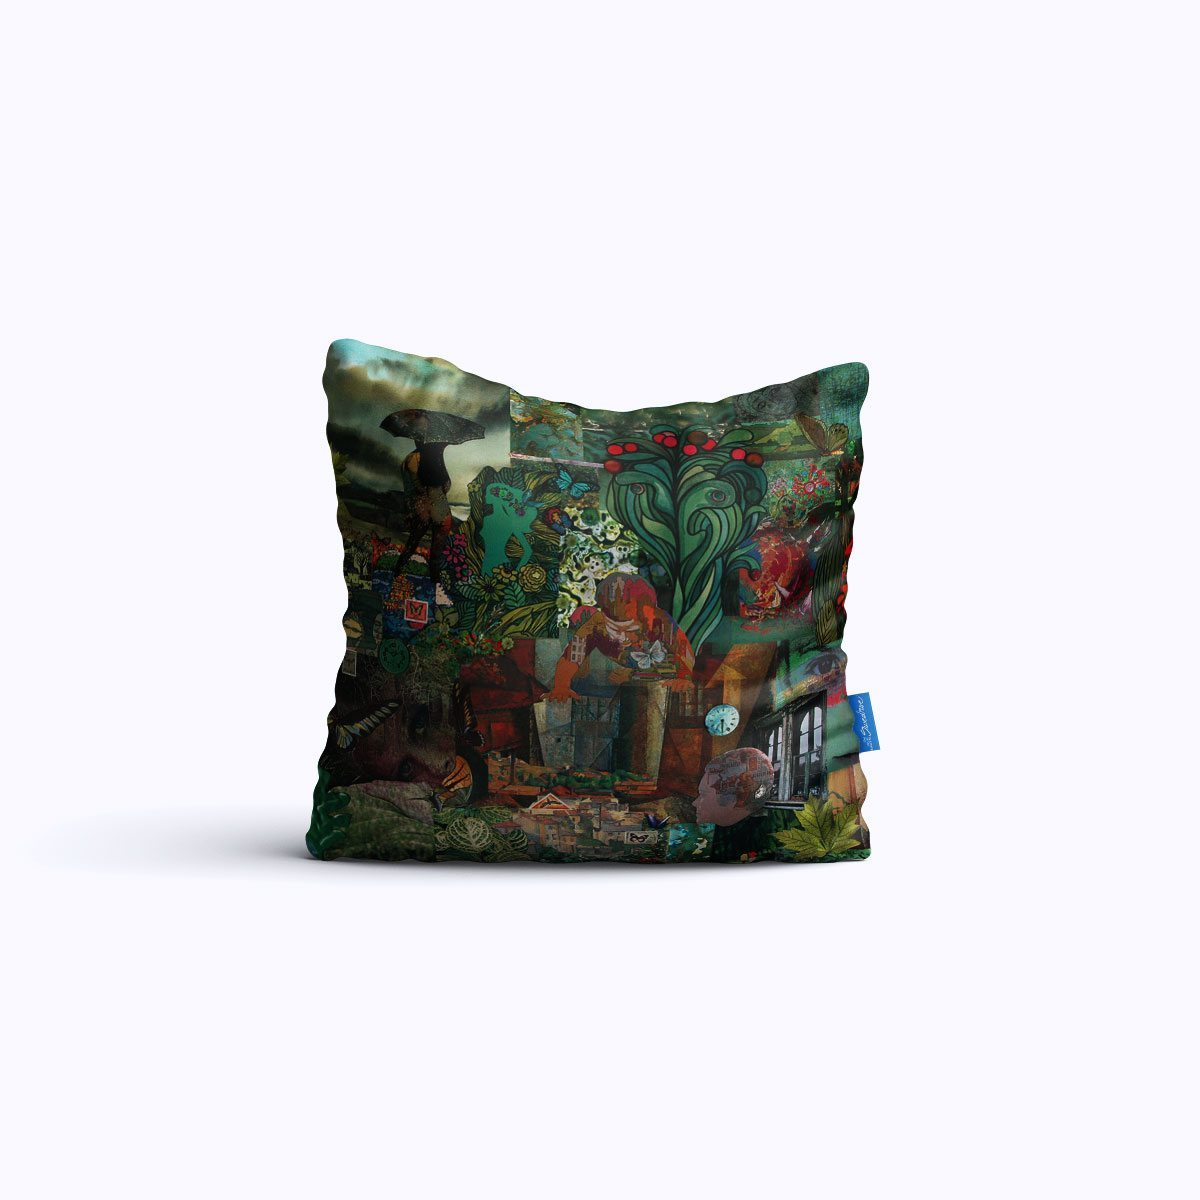 RMS001-Rainy Reprise – Throw Pillow – Swedroe Licensing-RepriseWEB-pillow01